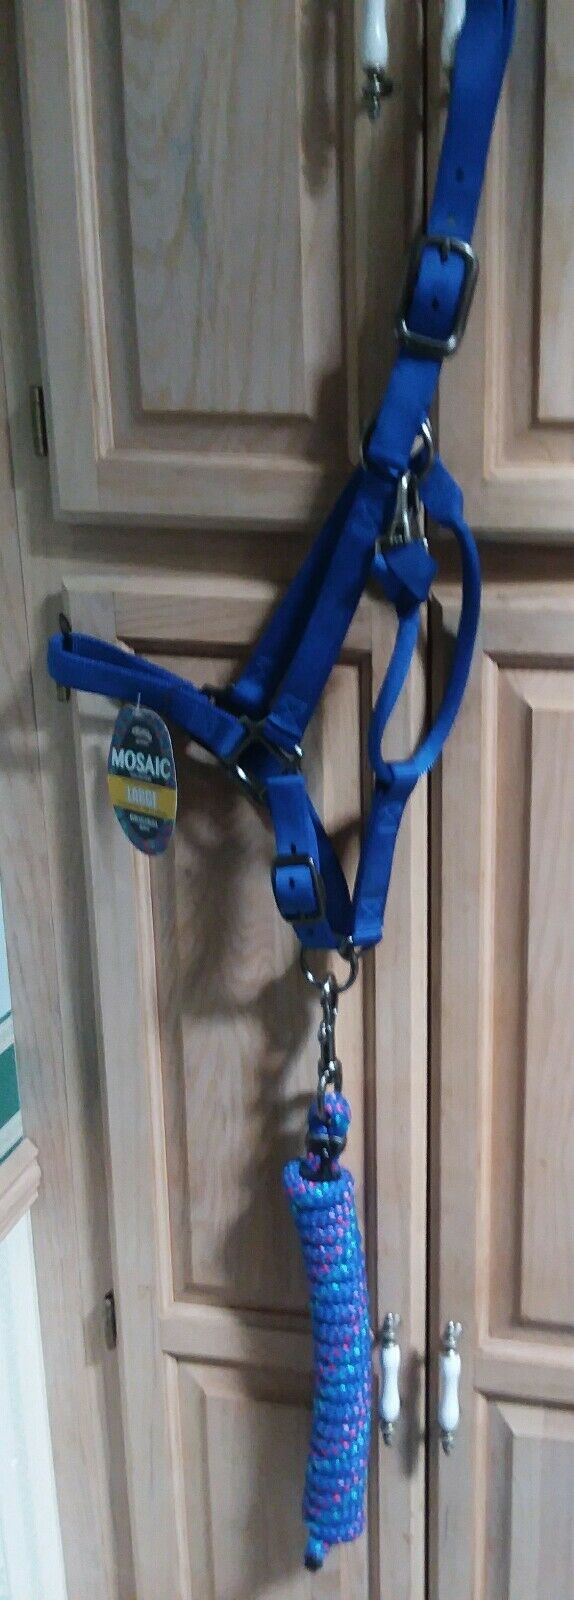 LARGE WEAVER 1  NYLON HORSE HALTER W pewter  hrdware bluee dazzle mosiac adj  team promotions